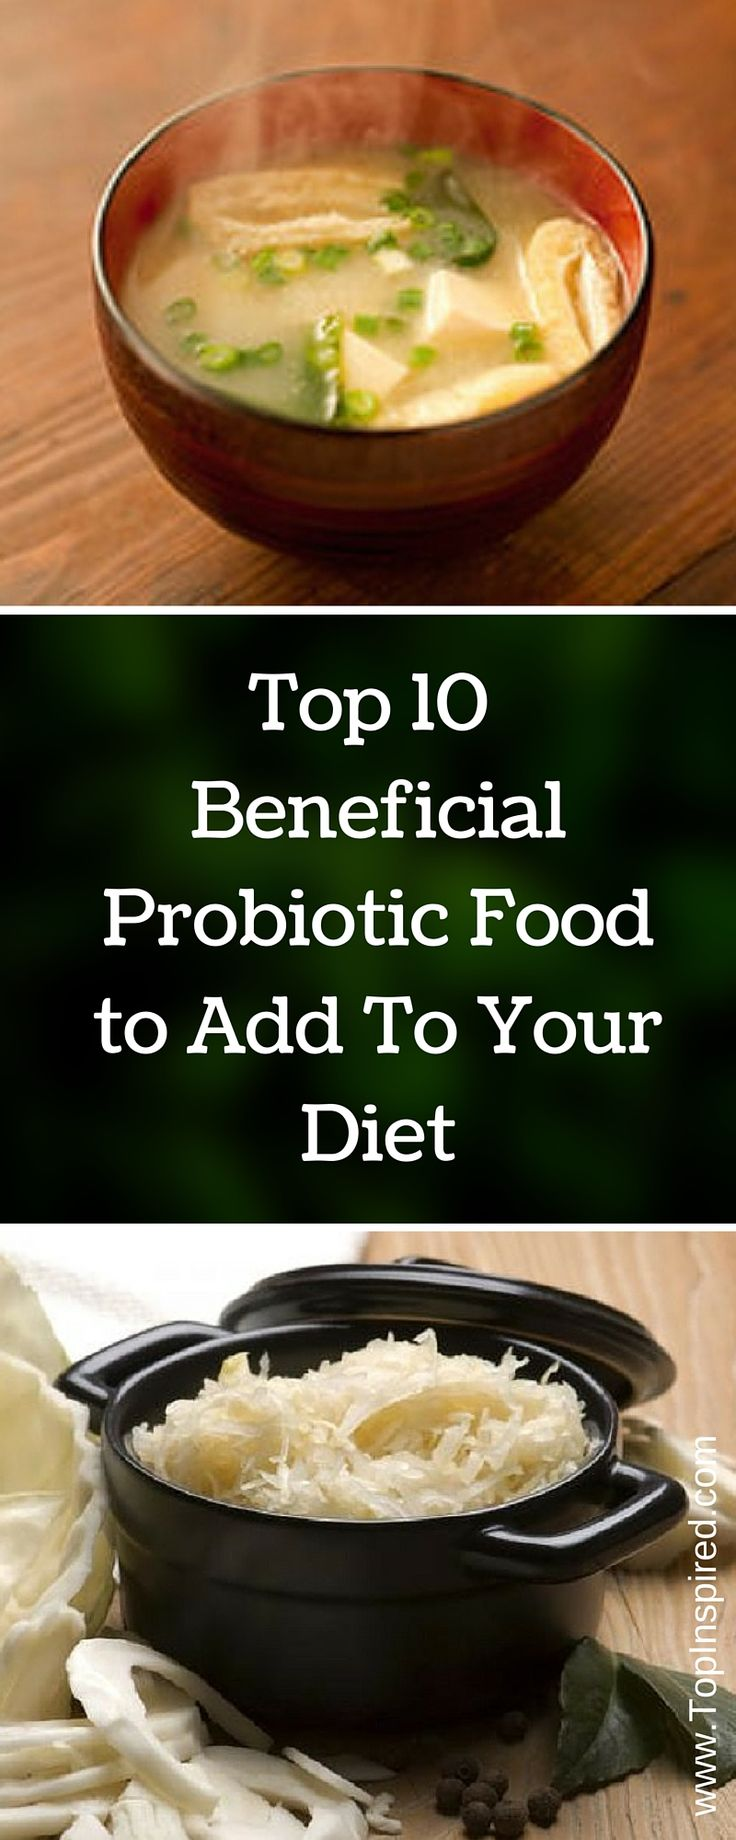 To prevent diseases, you should include more natural probiotic (containing live strains of healthy bacteria) foods in your diet. Here you can find a list of top 10 probiotic food. #Probiotic #Probiotic_Food